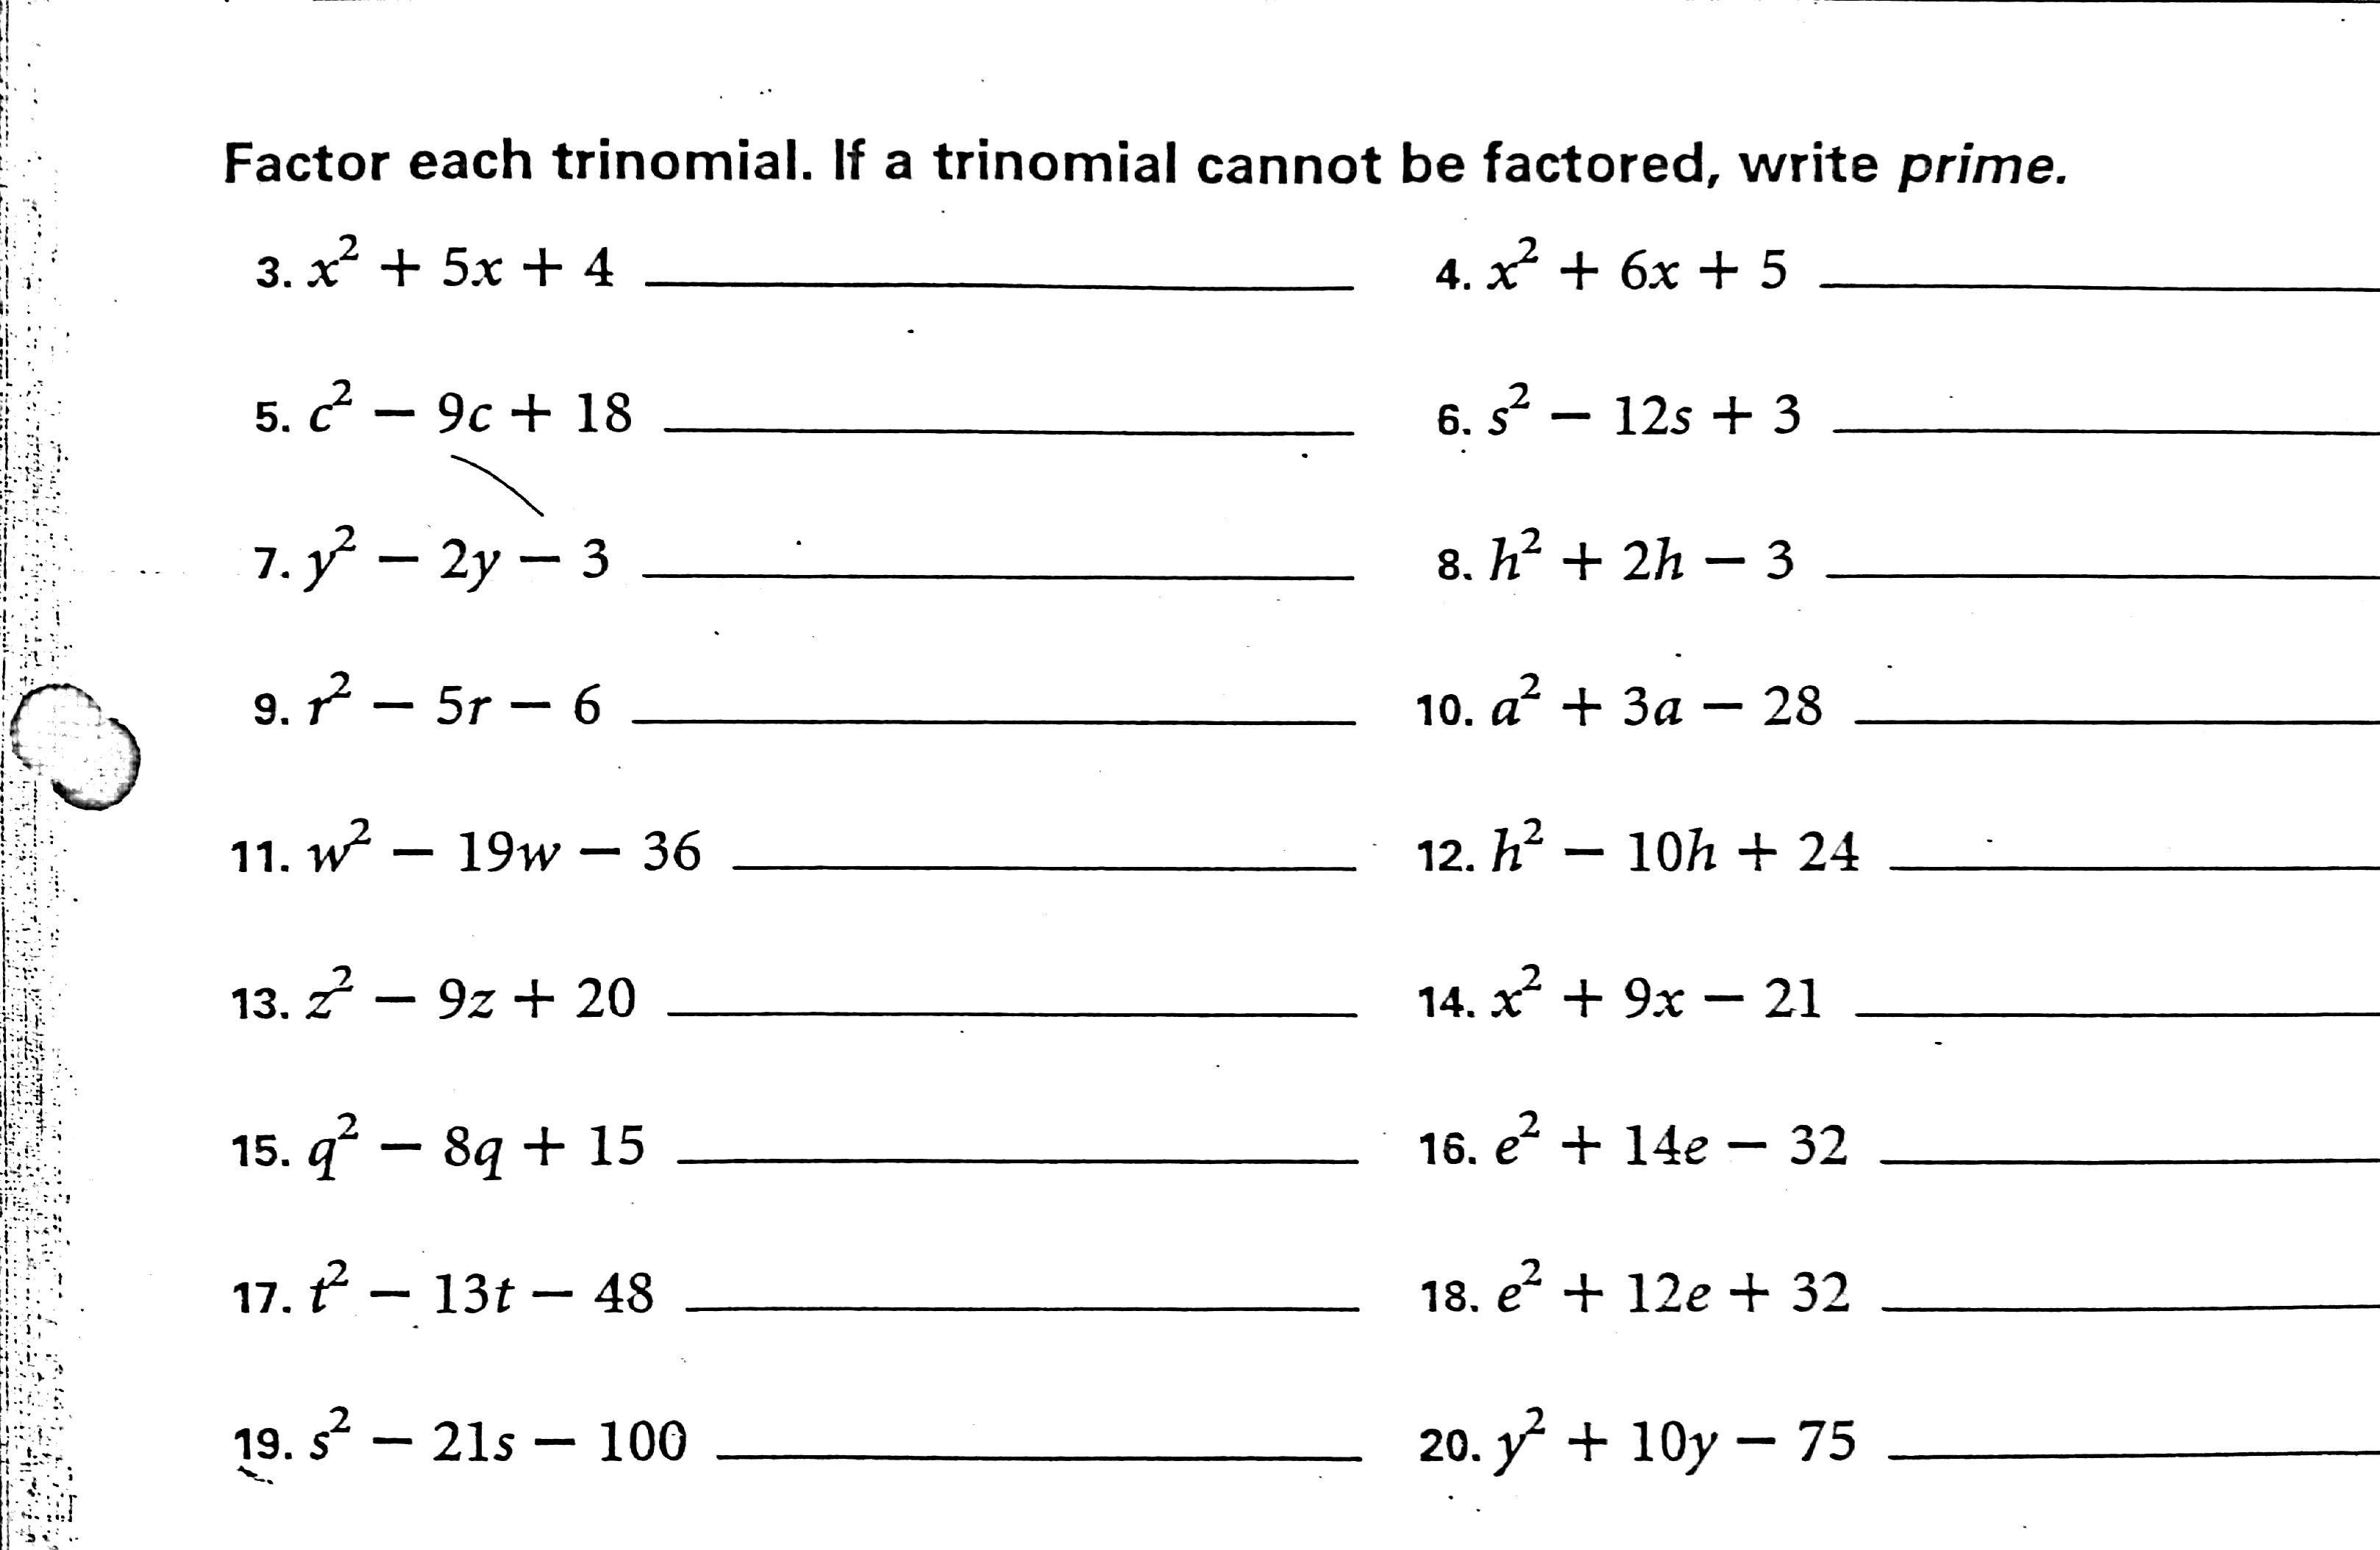 Proatmealus  Fascinating Factoring Worksheet  Delwfgcom With Entrancing Factoring Polynomials Practice Worksheet With Answers Coterraneo With Lovely Esl Noun Worksheets Also English Worksheets For Primary  In Addition Maths Worksheets Grade  And Number  Worksheets For Preschoolers As Well As Grade One Addition Worksheets Additionally Worksheets On Sequences From Delwfgcom With Proatmealus  Entrancing Factoring Worksheet  Delwfgcom With Lovely Factoring Polynomials Practice Worksheet With Answers Coterraneo And Fascinating Esl Noun Worksheets Also English Worksheets For Primary  In Addition Maths Worksheets Grade  From Delwfgcom